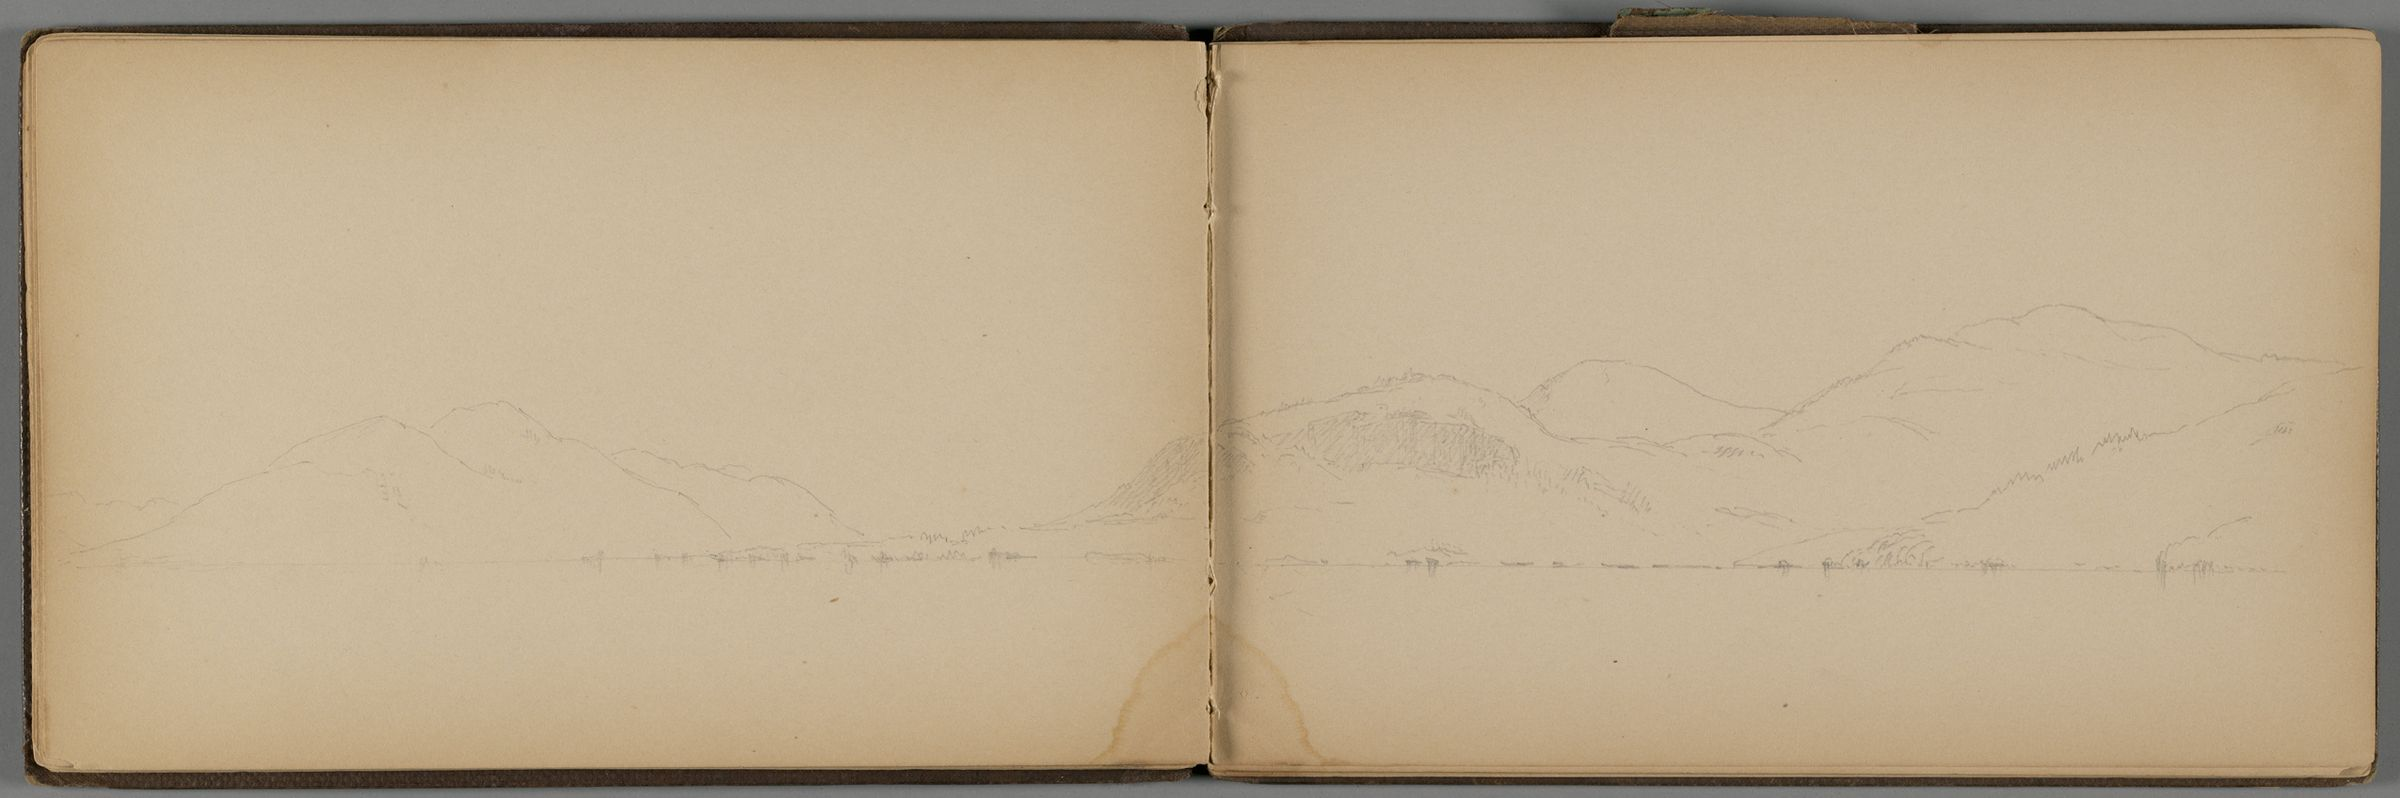 Landscape With Lake; Verso: Partial Landscape With Lake